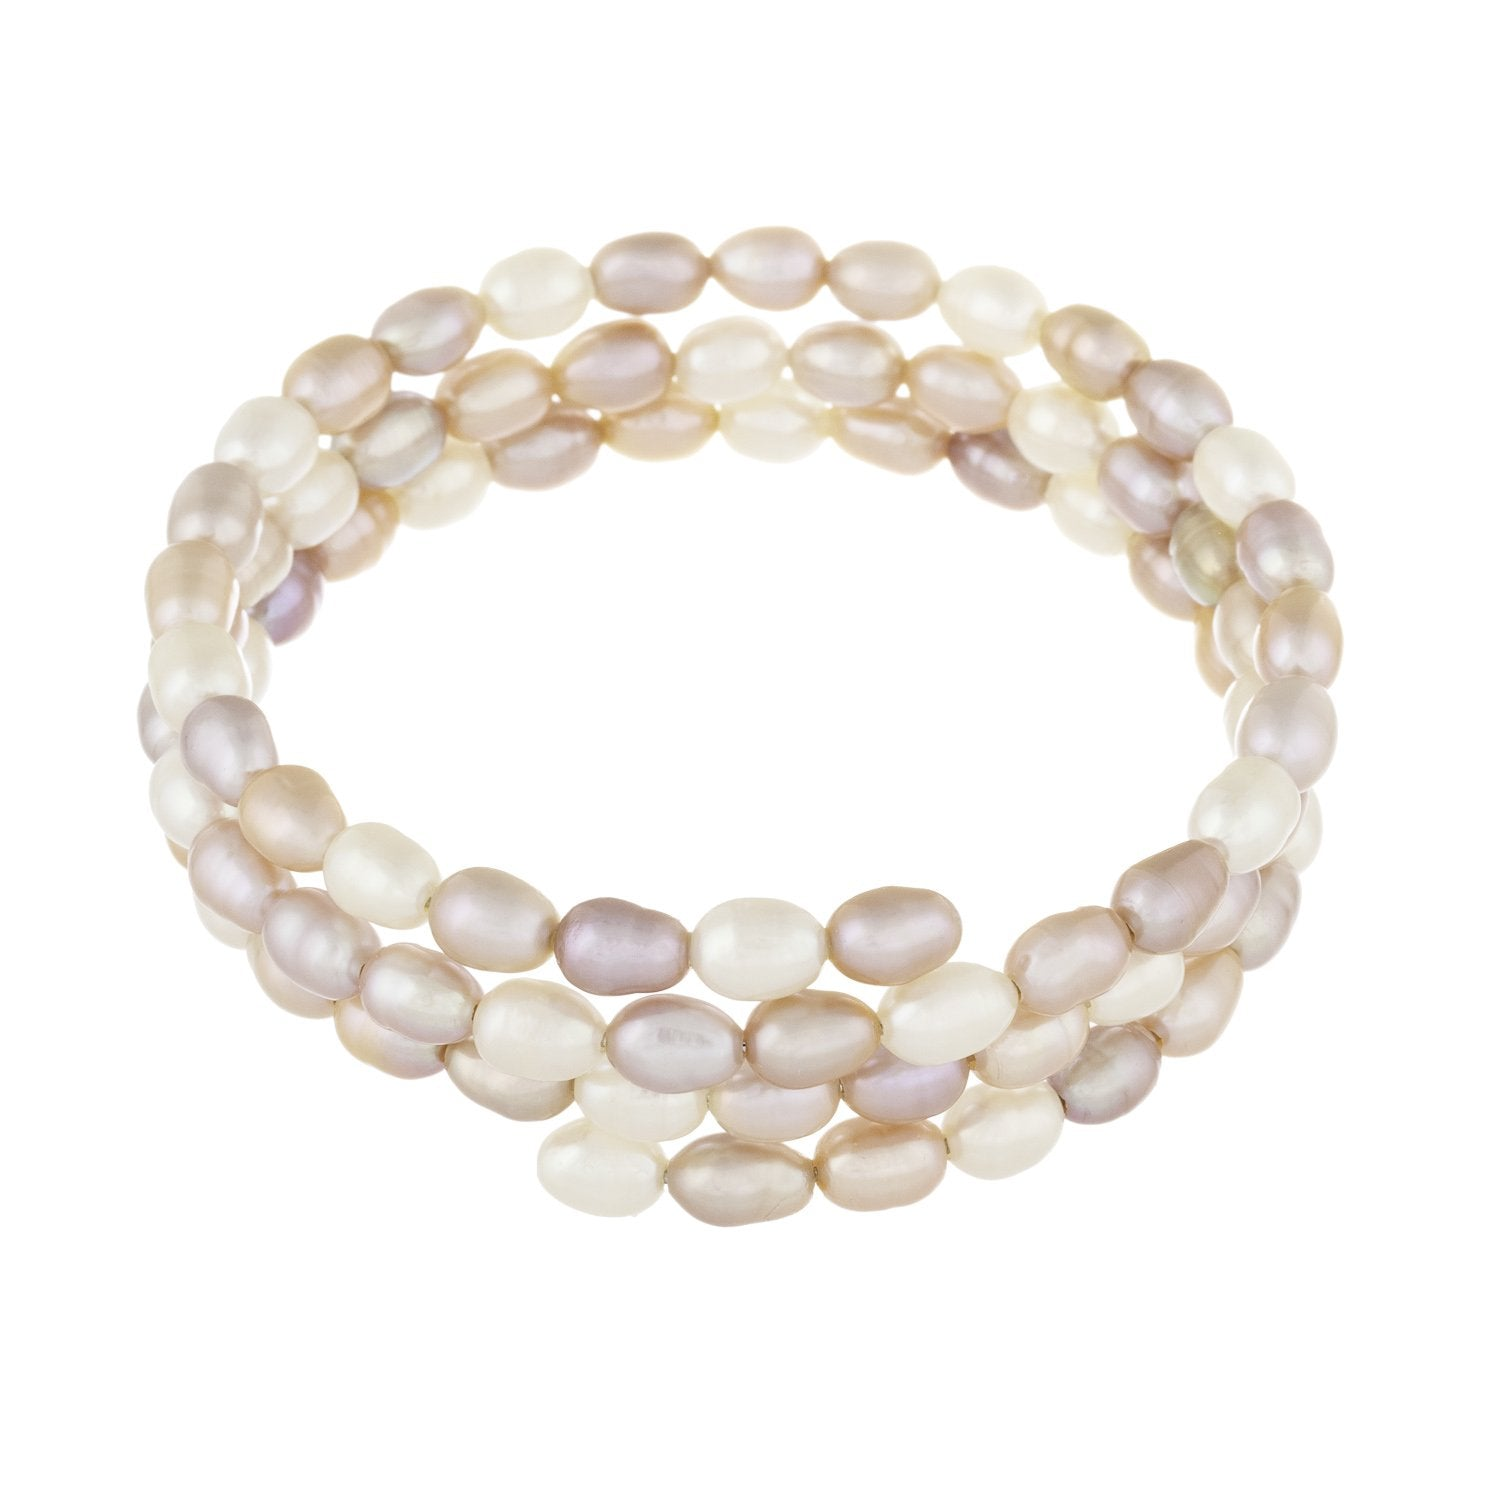 Beautiful Adjustable Bangle Pearl Bracelet